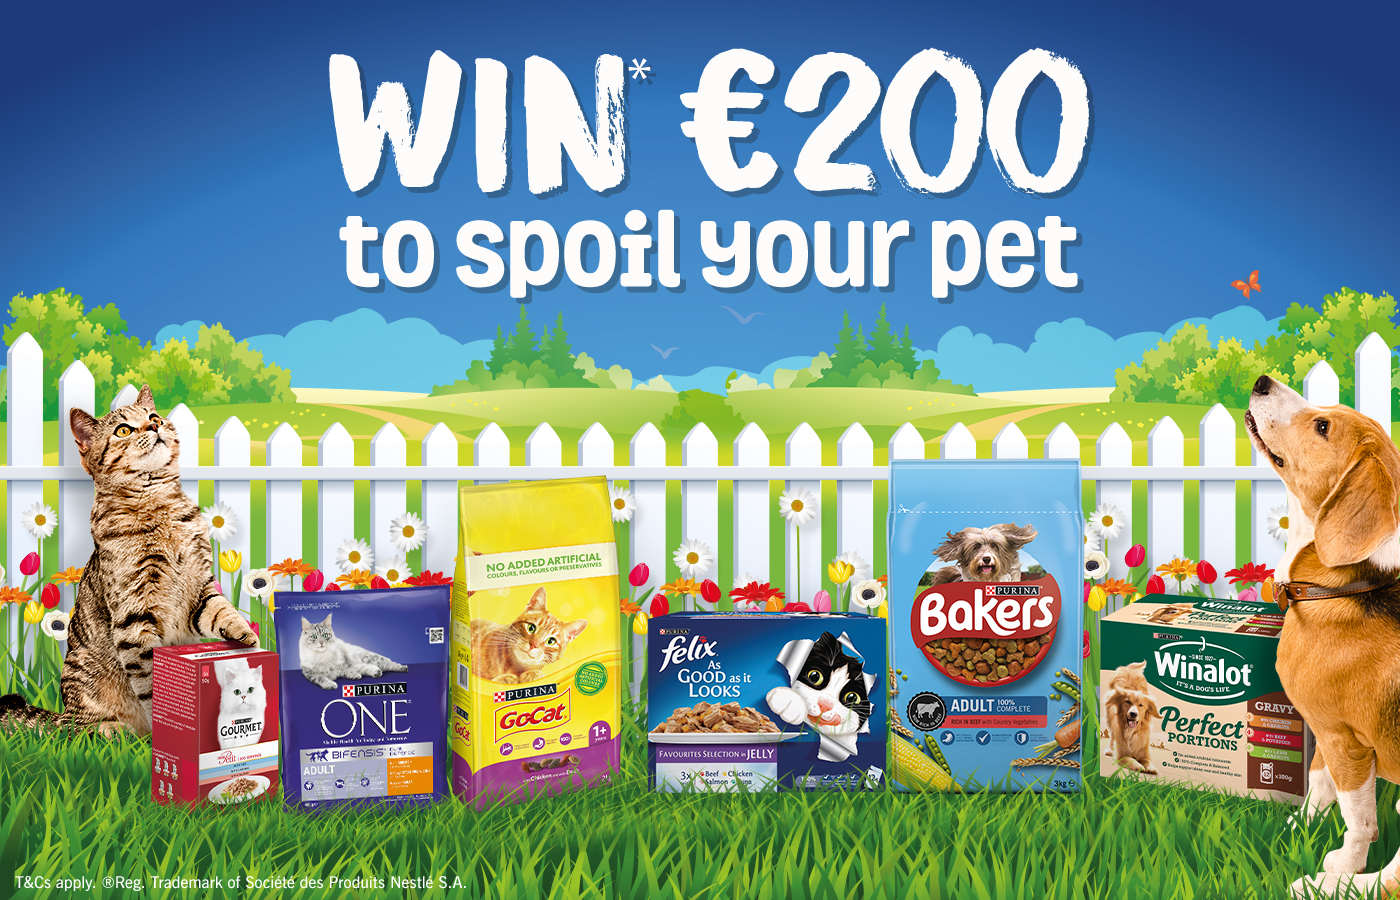 Win €200 to spoil your pet with Purina